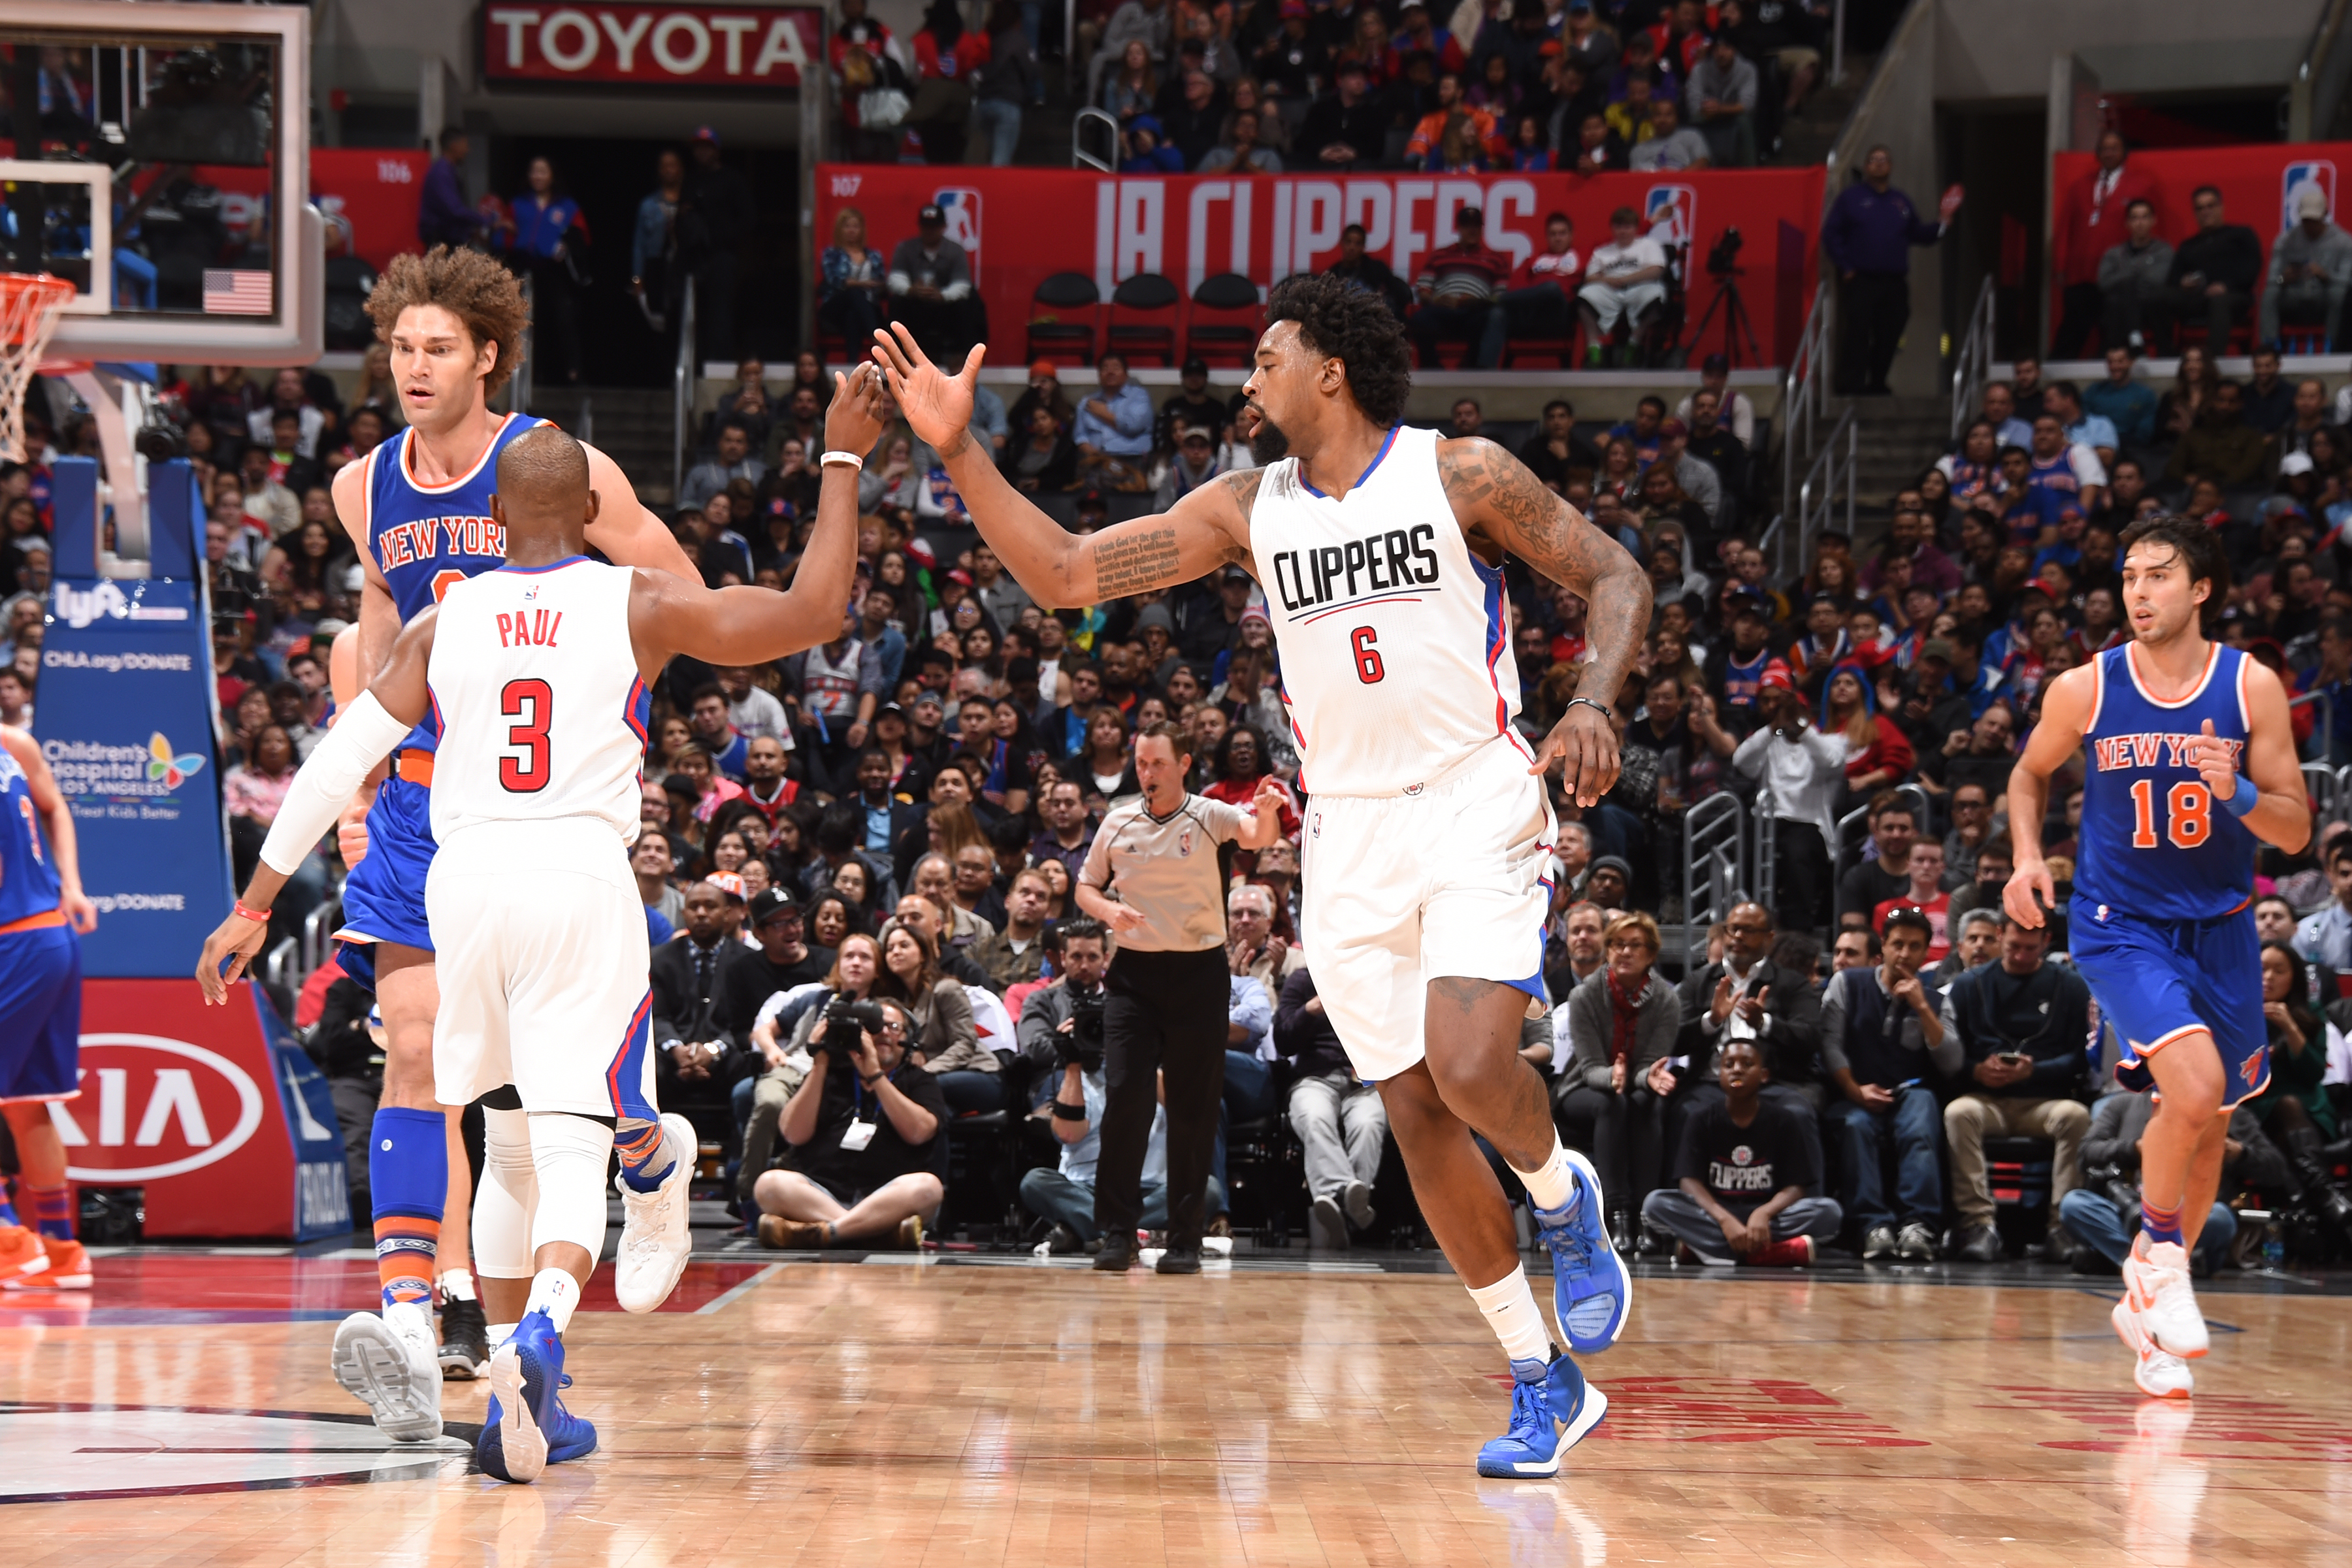 LOS ANGELES, CA - MARCH 11:  DeAndre Jordan #6 of the Los Angeles Clippers shakes hands with Chris Paul #3 of the Los Angeles Clippers during the game against the New York Knicks on March 11, 2016 at STAPLES Center in Los Angeles, California. (Photo by An